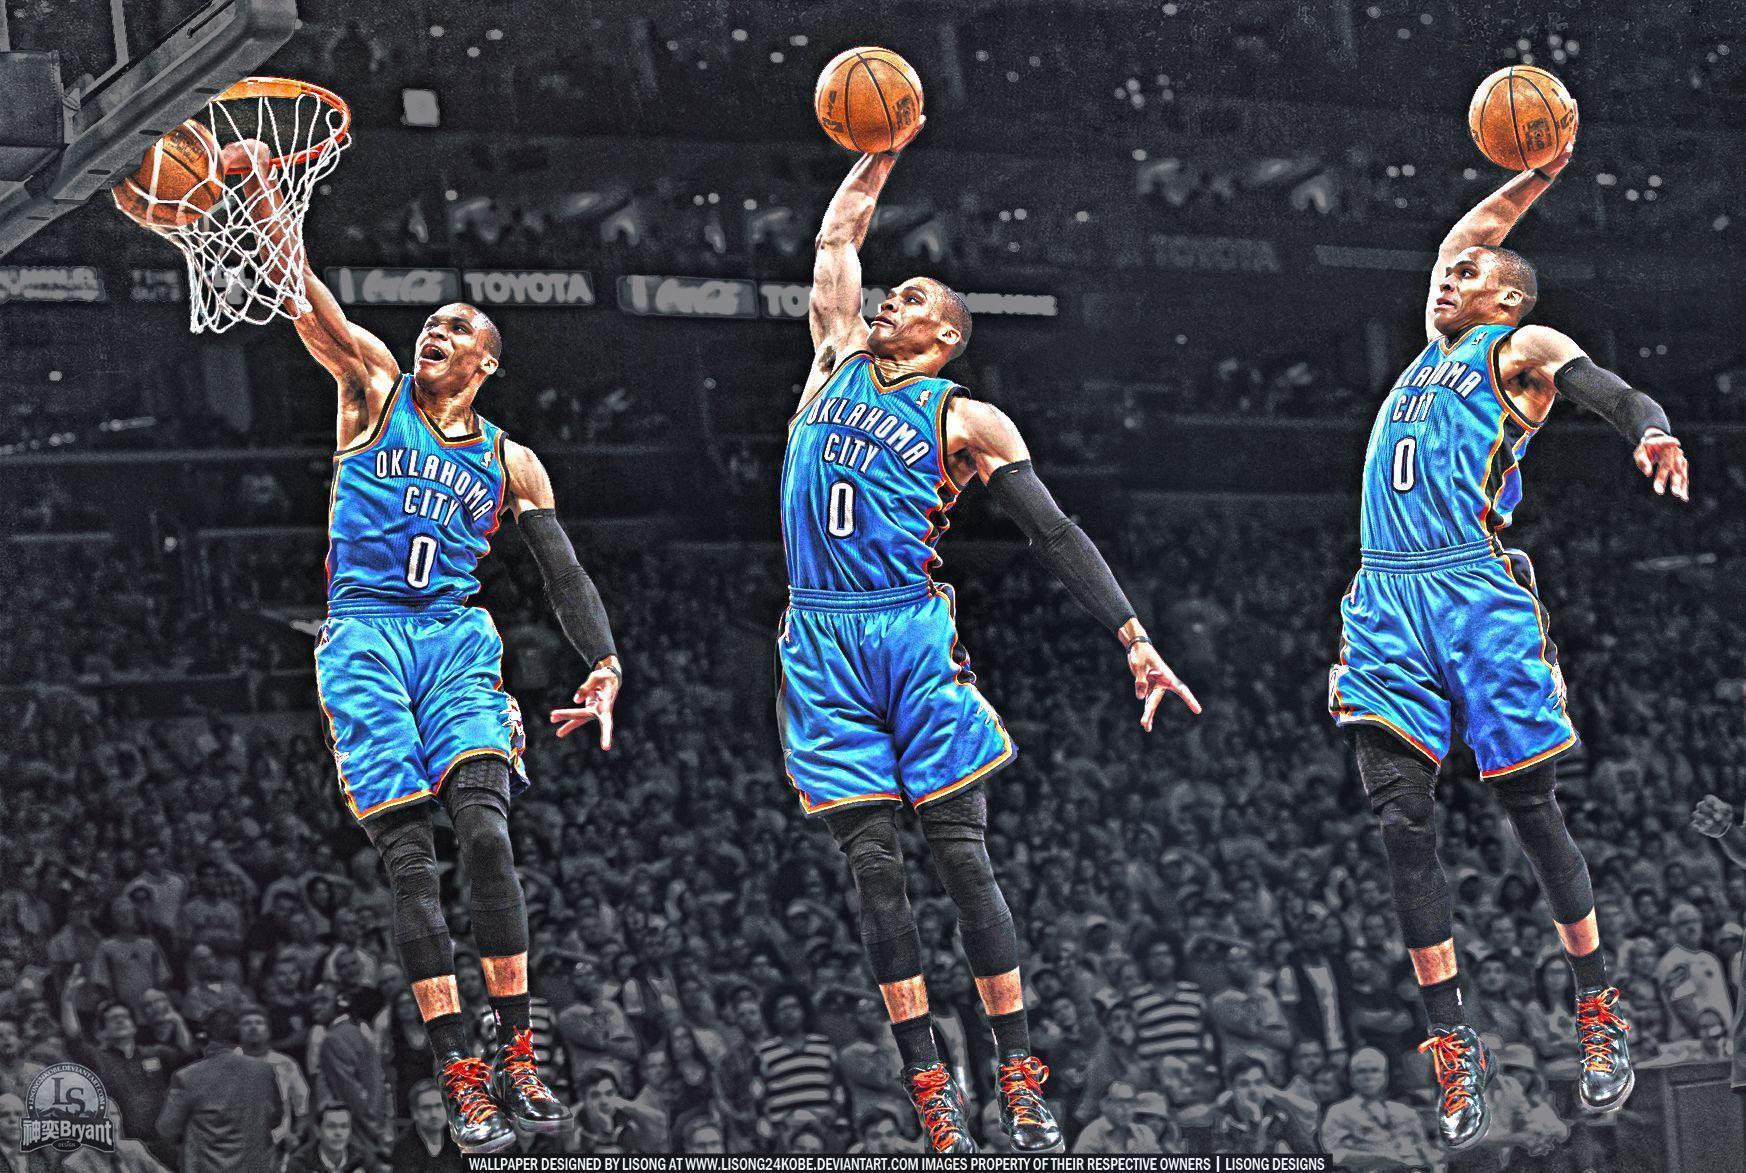 Russell westbrook wallpaper iphone wallpapersafari - Russell Westbrook Wallpaper Iphone Wallpapersafari